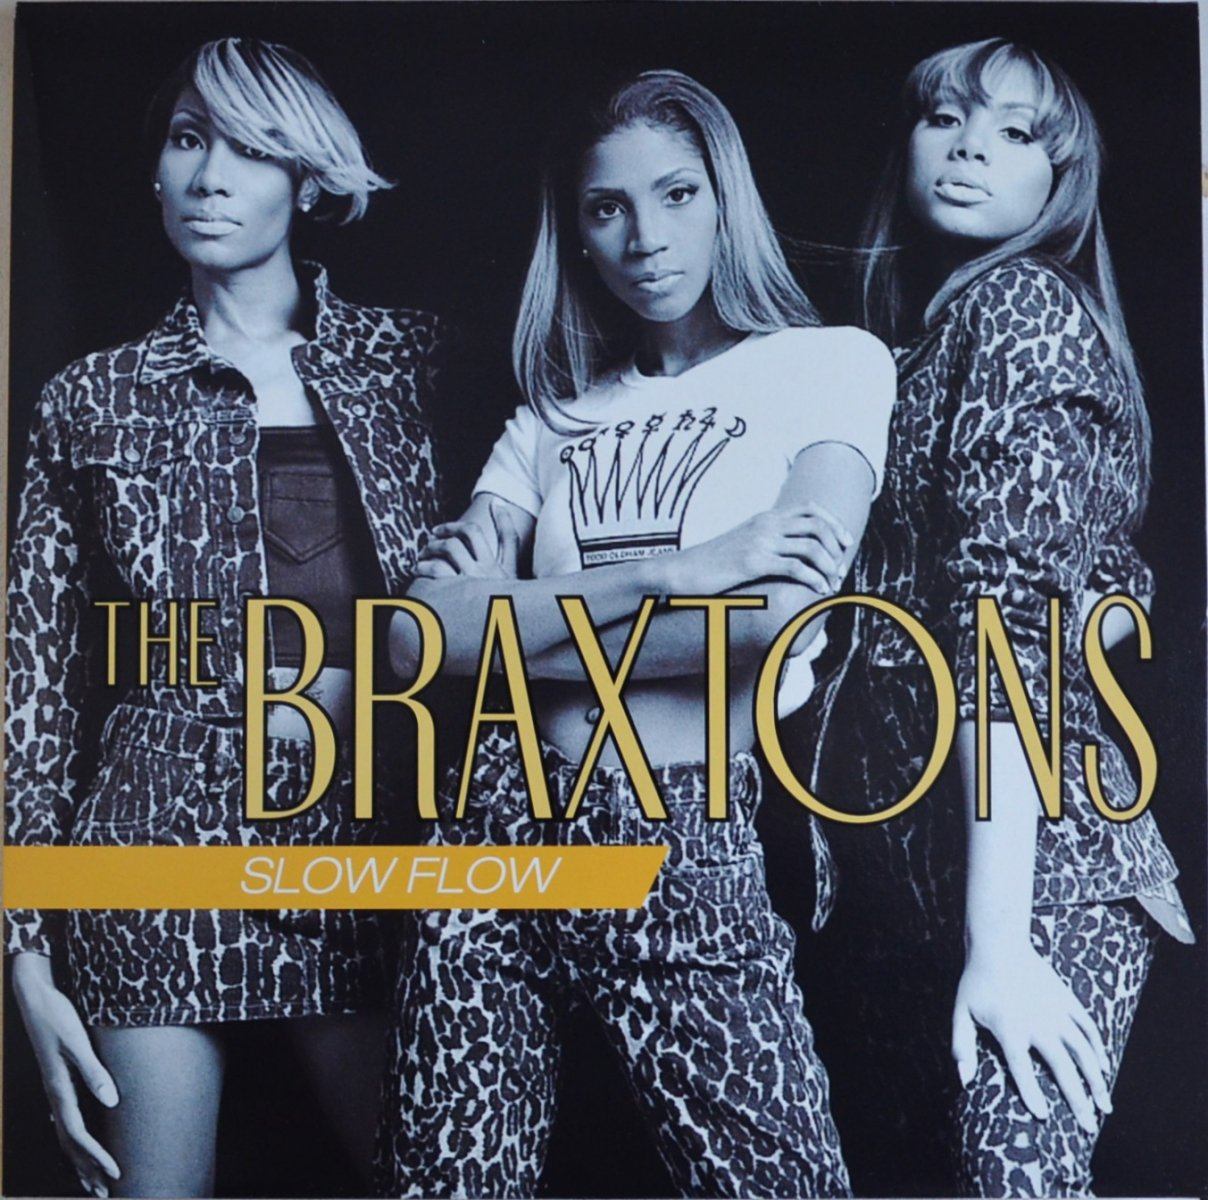 THE BRAXTONS / SLOW FLOW / L.A.D.I. / 24/7 (12